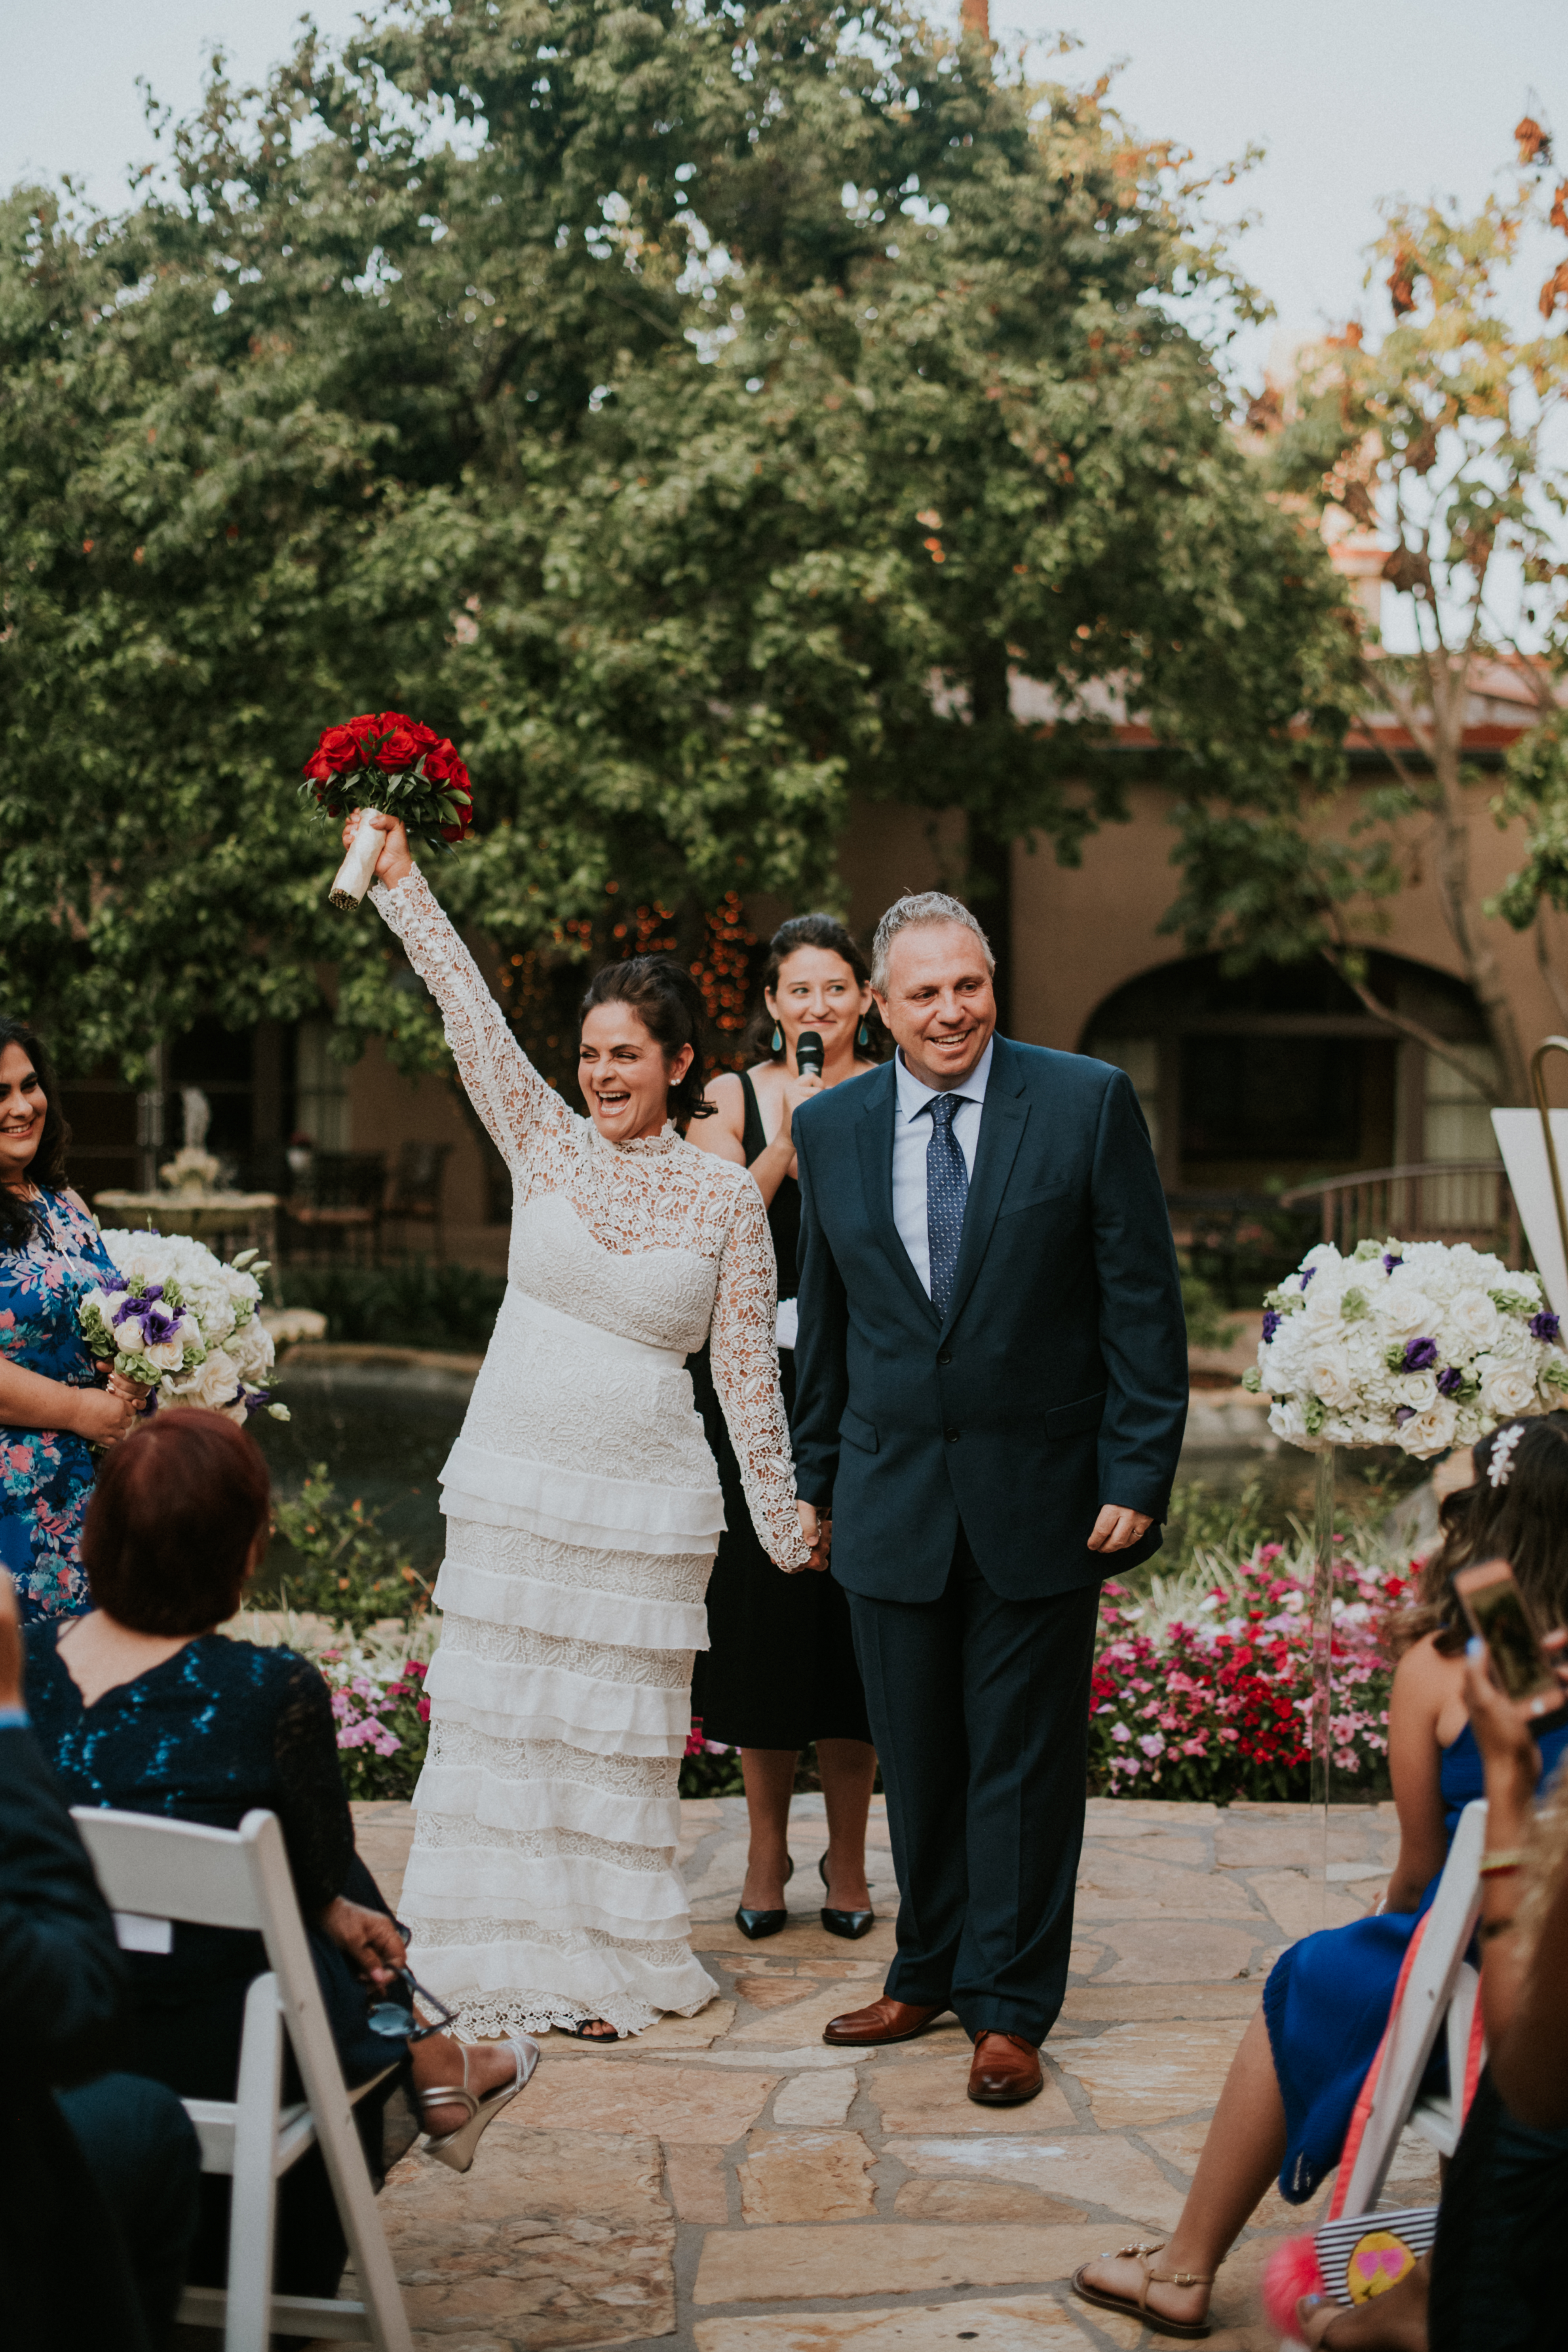 bride and groom walking down the aisle wedding day photography at the langham pasadena california